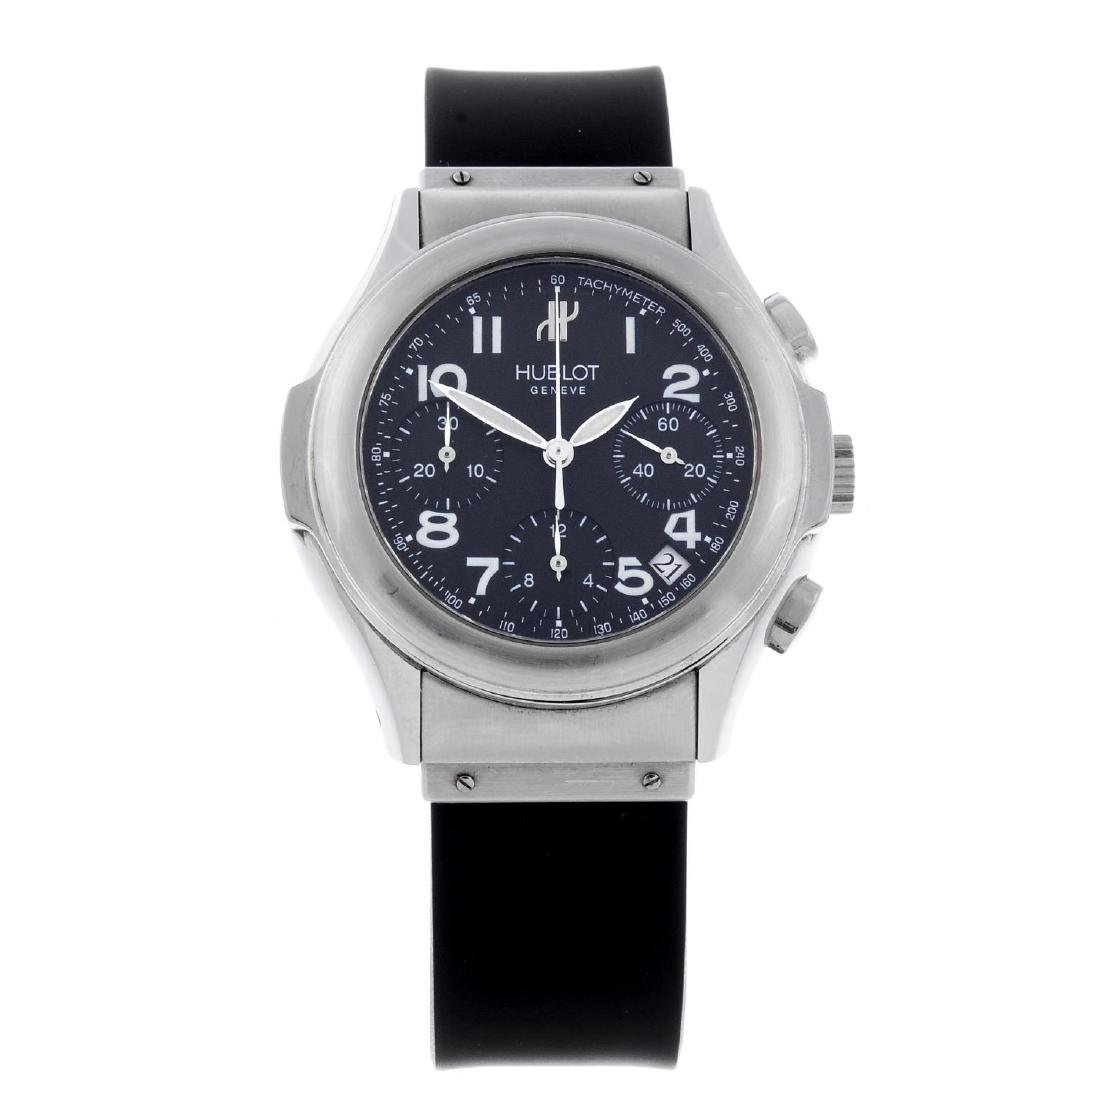 HUBLOT - a gentleman's MDM chronograph wrist watch.